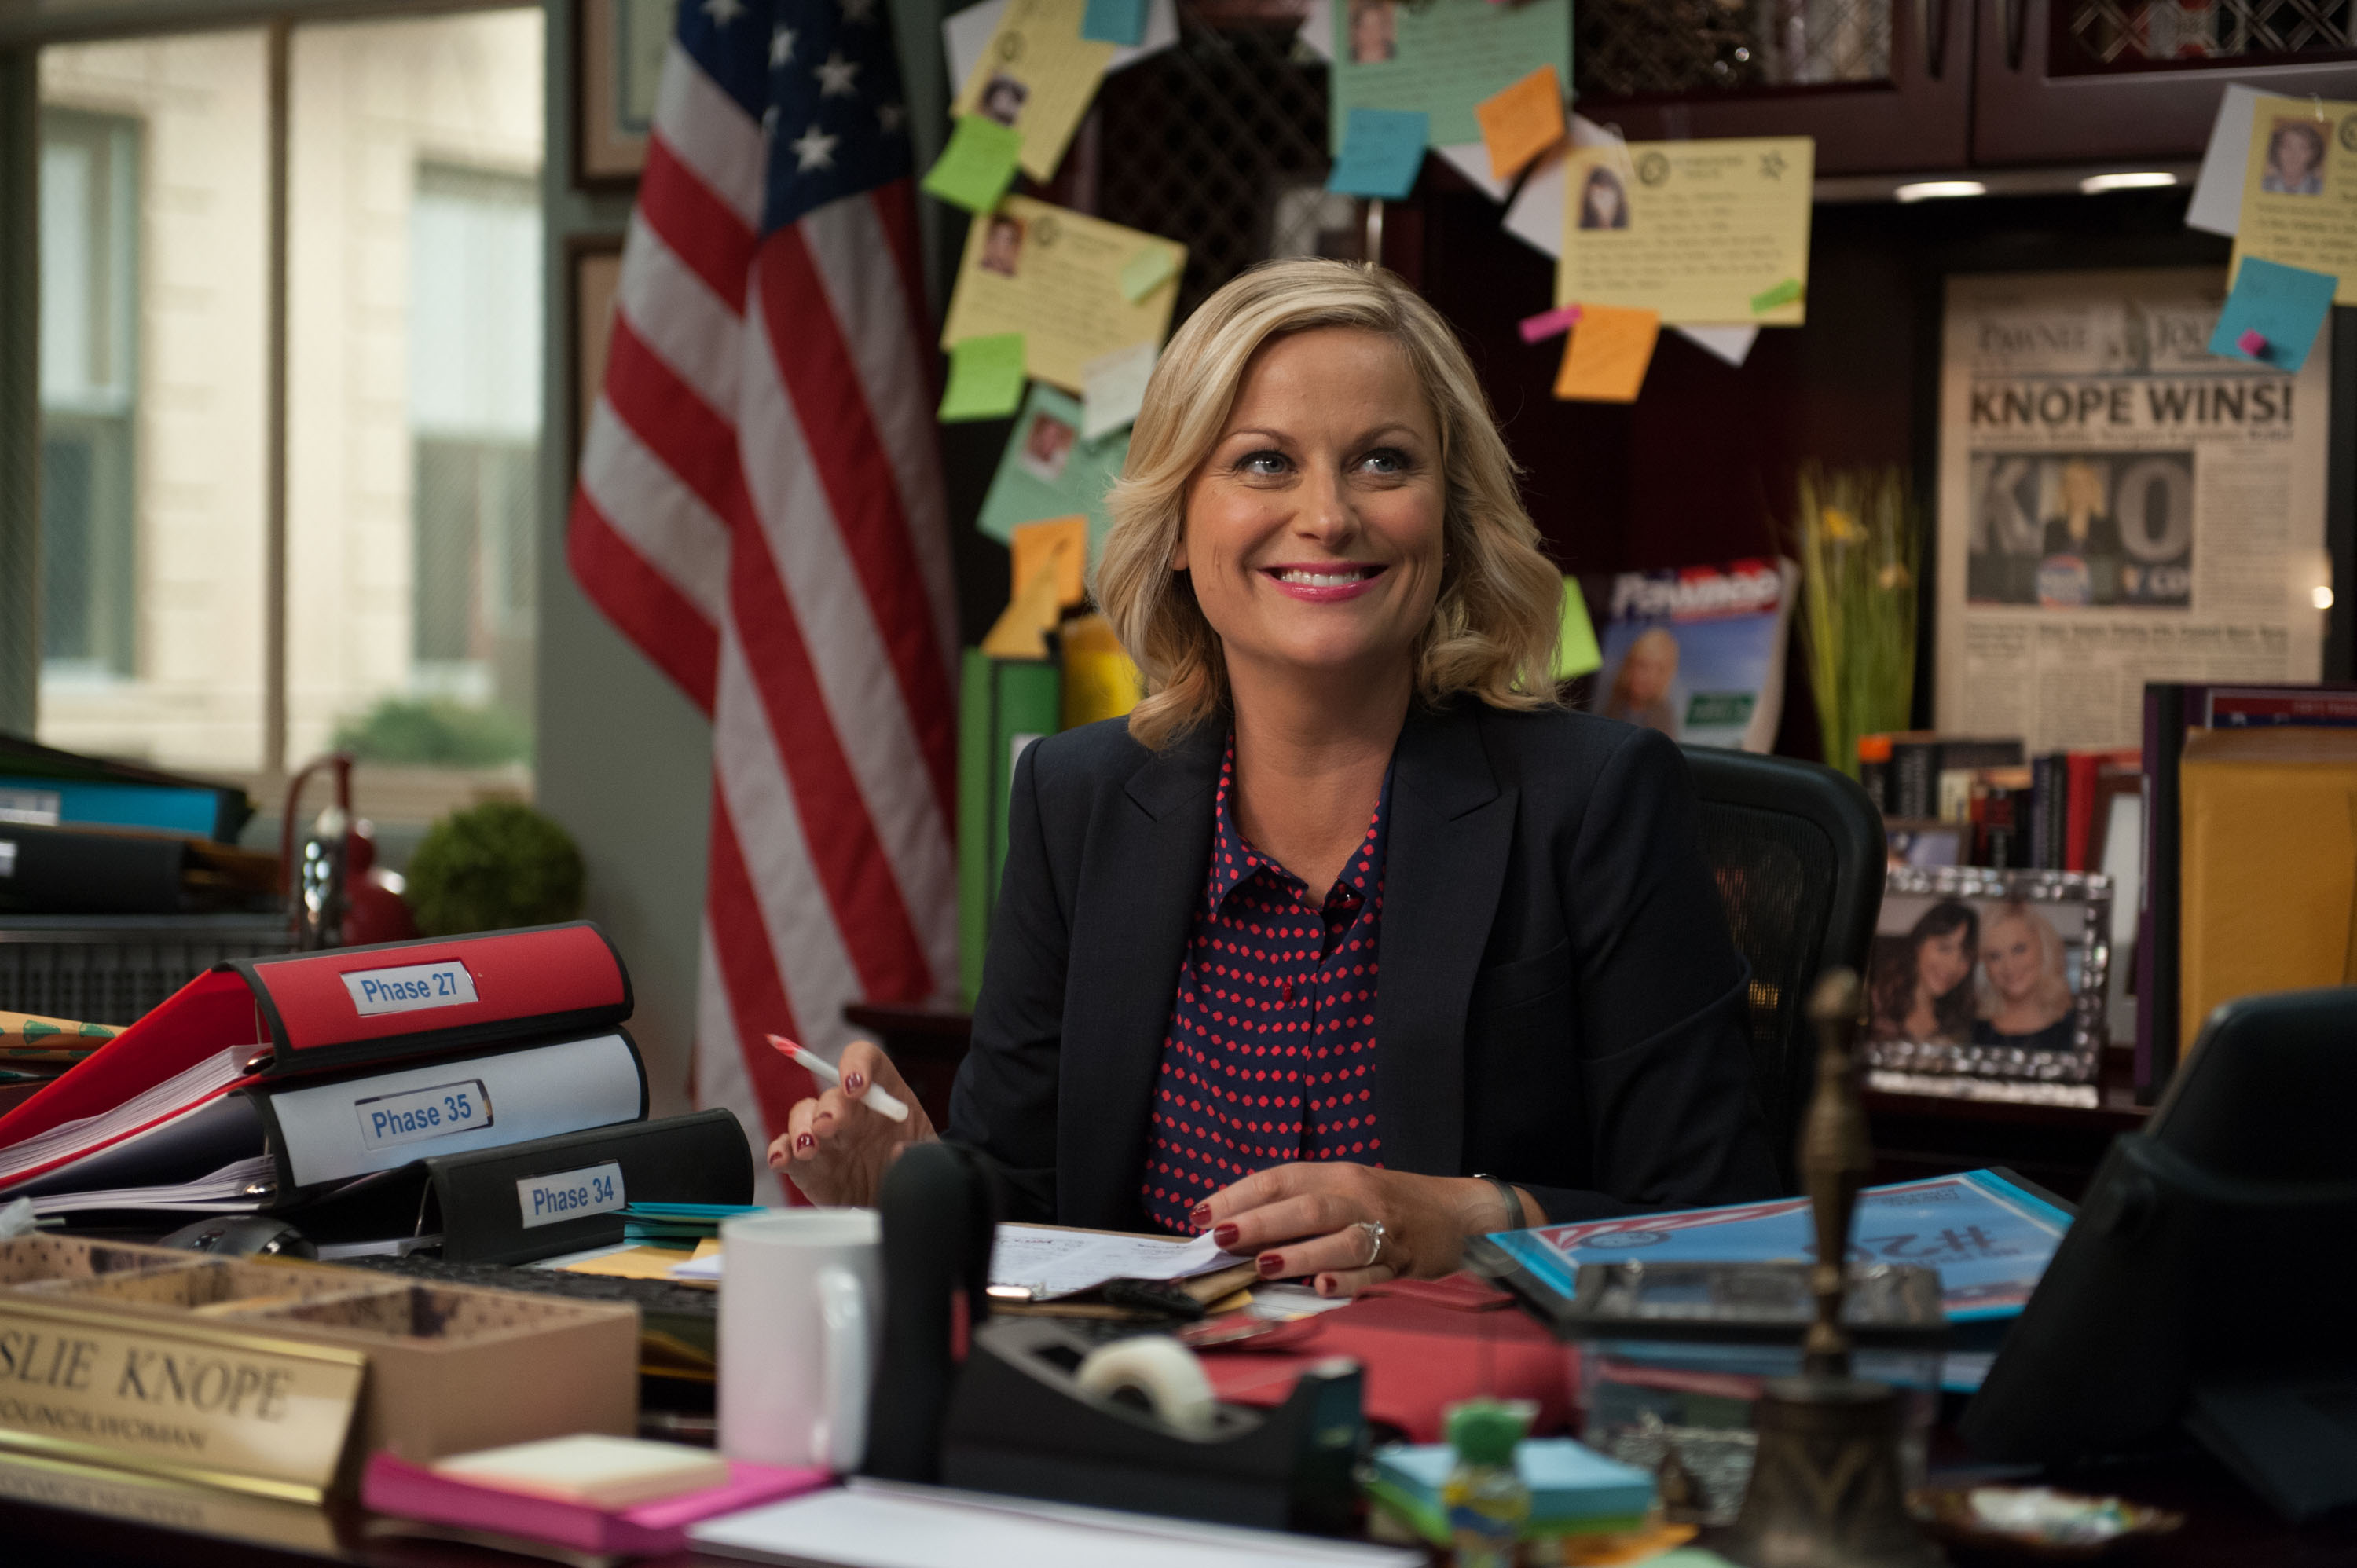 A letter to America from Leslie Knope, regarding Donald Trump